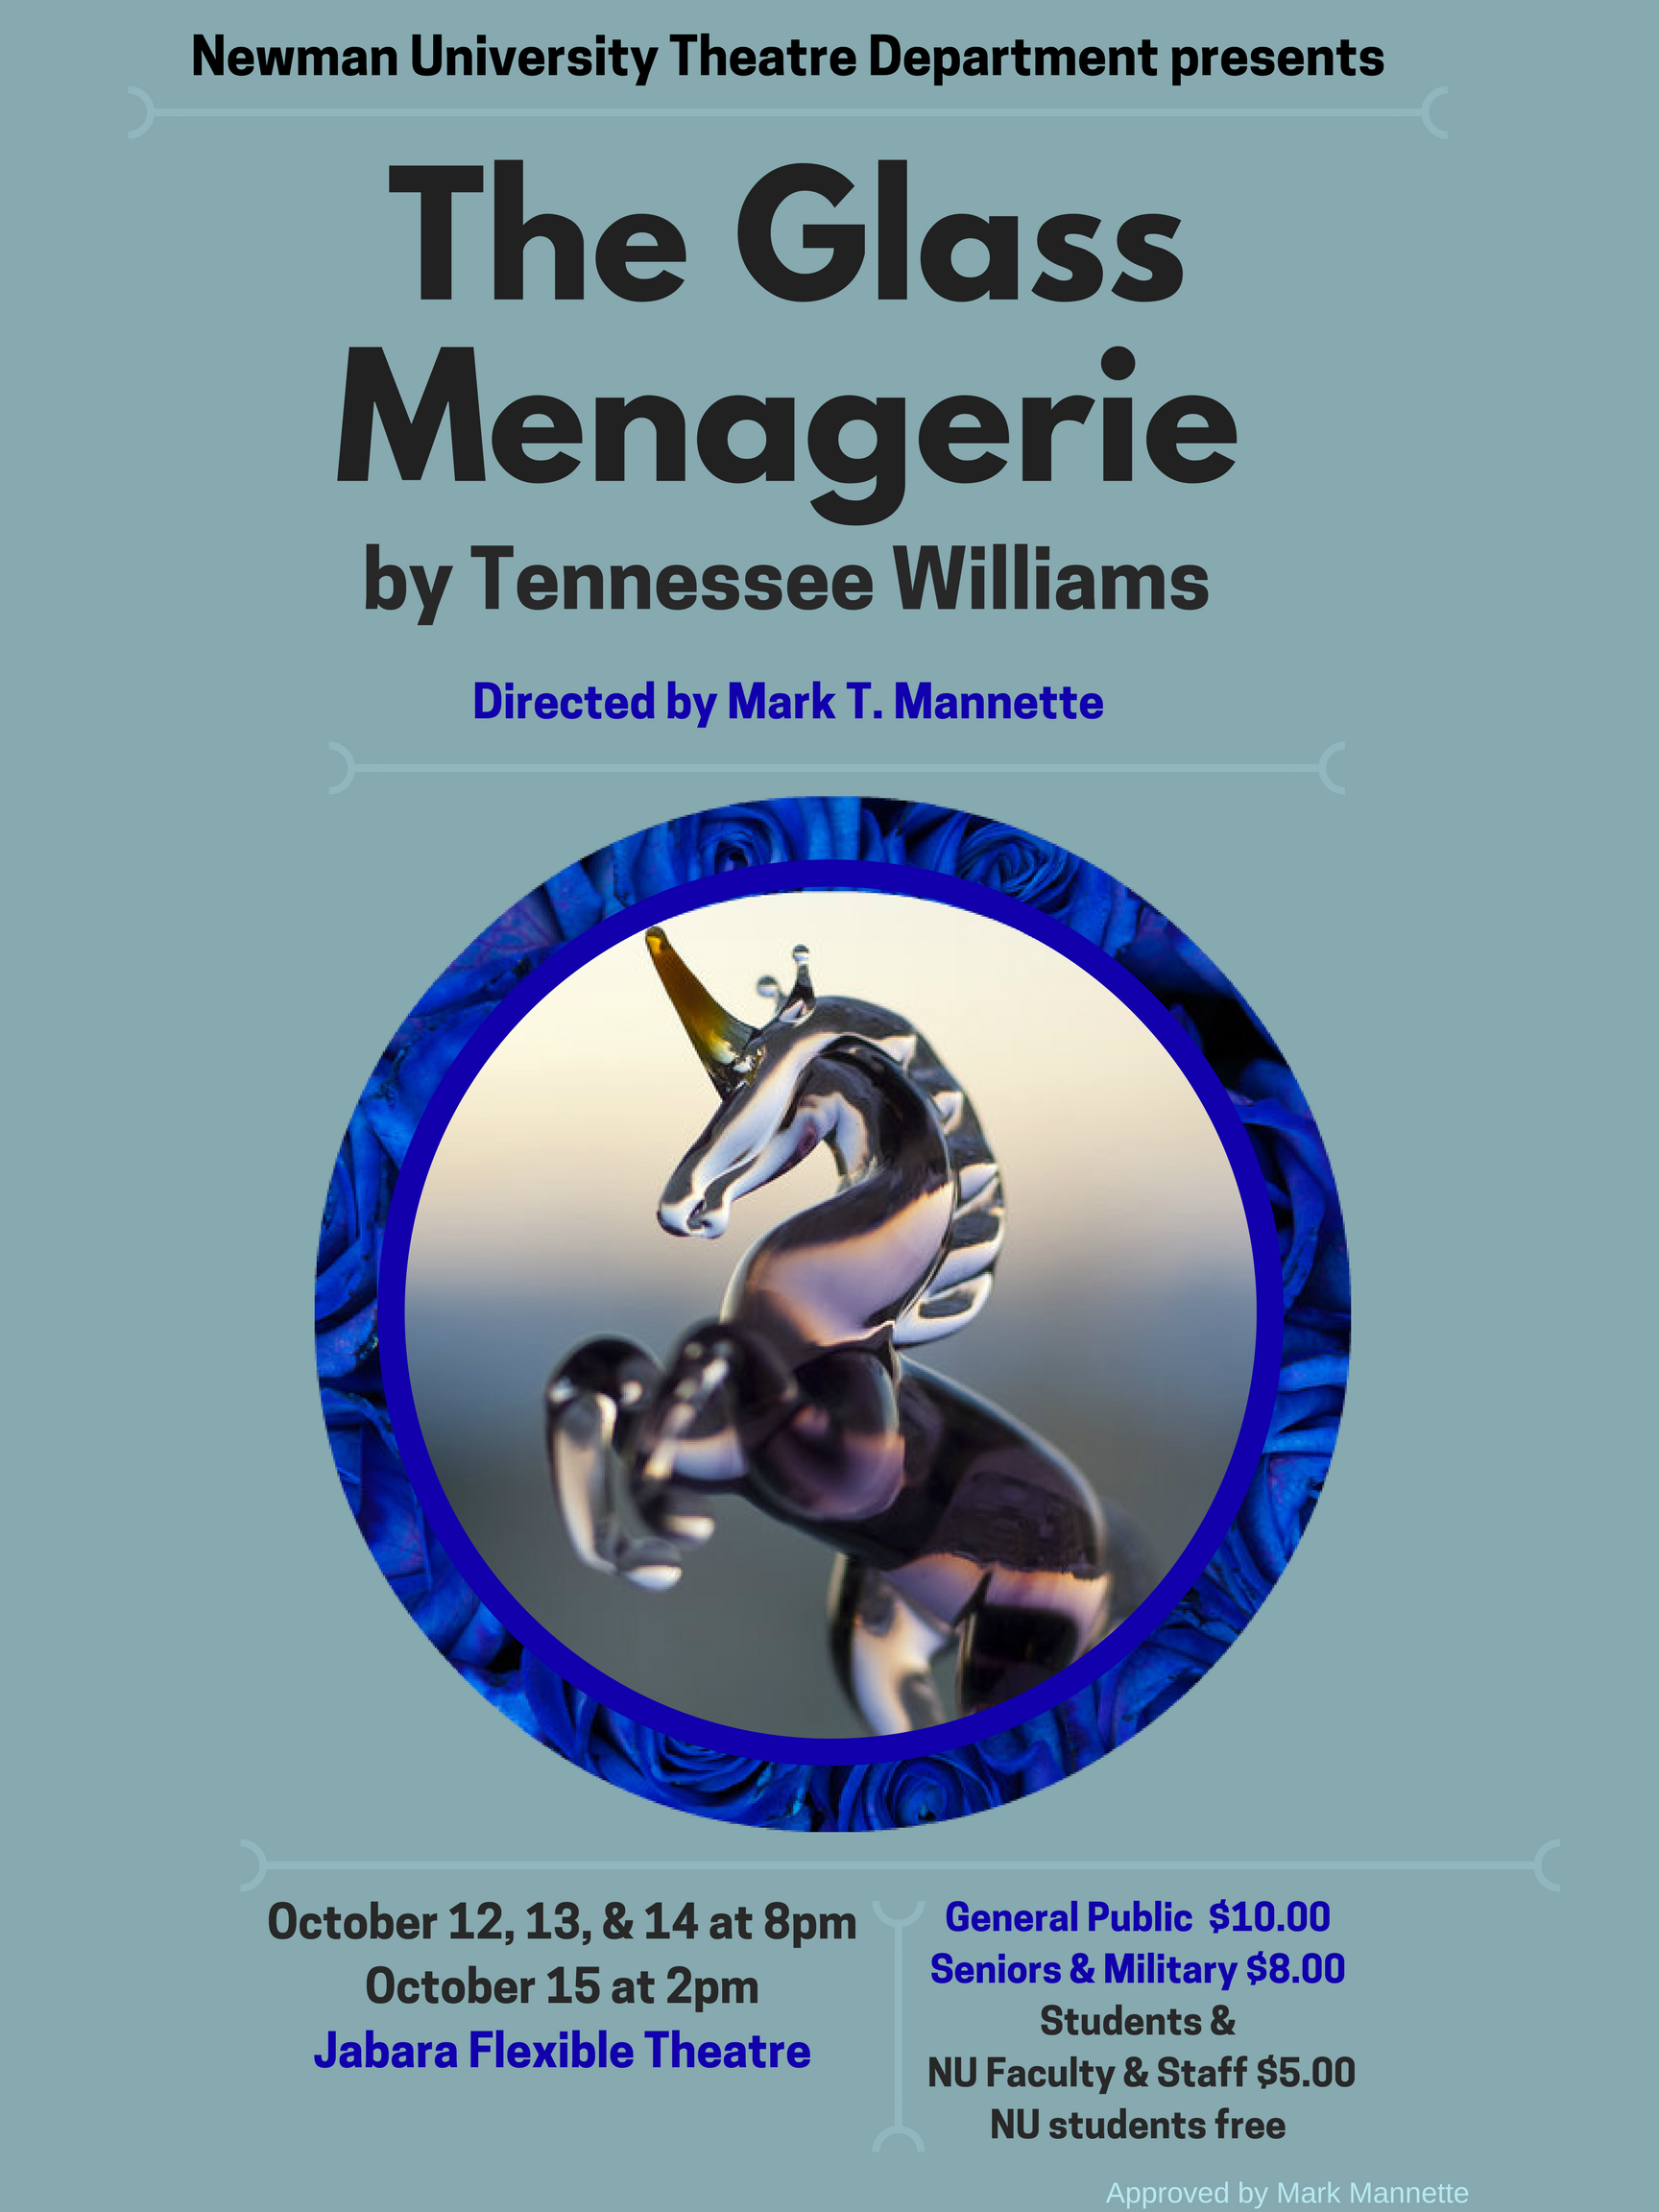 a plot summary of tennessee williams play the glass menagerie Free monkeynotes study guide summary-the glass menagerie by tennessee williams-plot structure summary/rising action/falling action-free booknotes online chapter summary plot synopsis study guide essay book report.